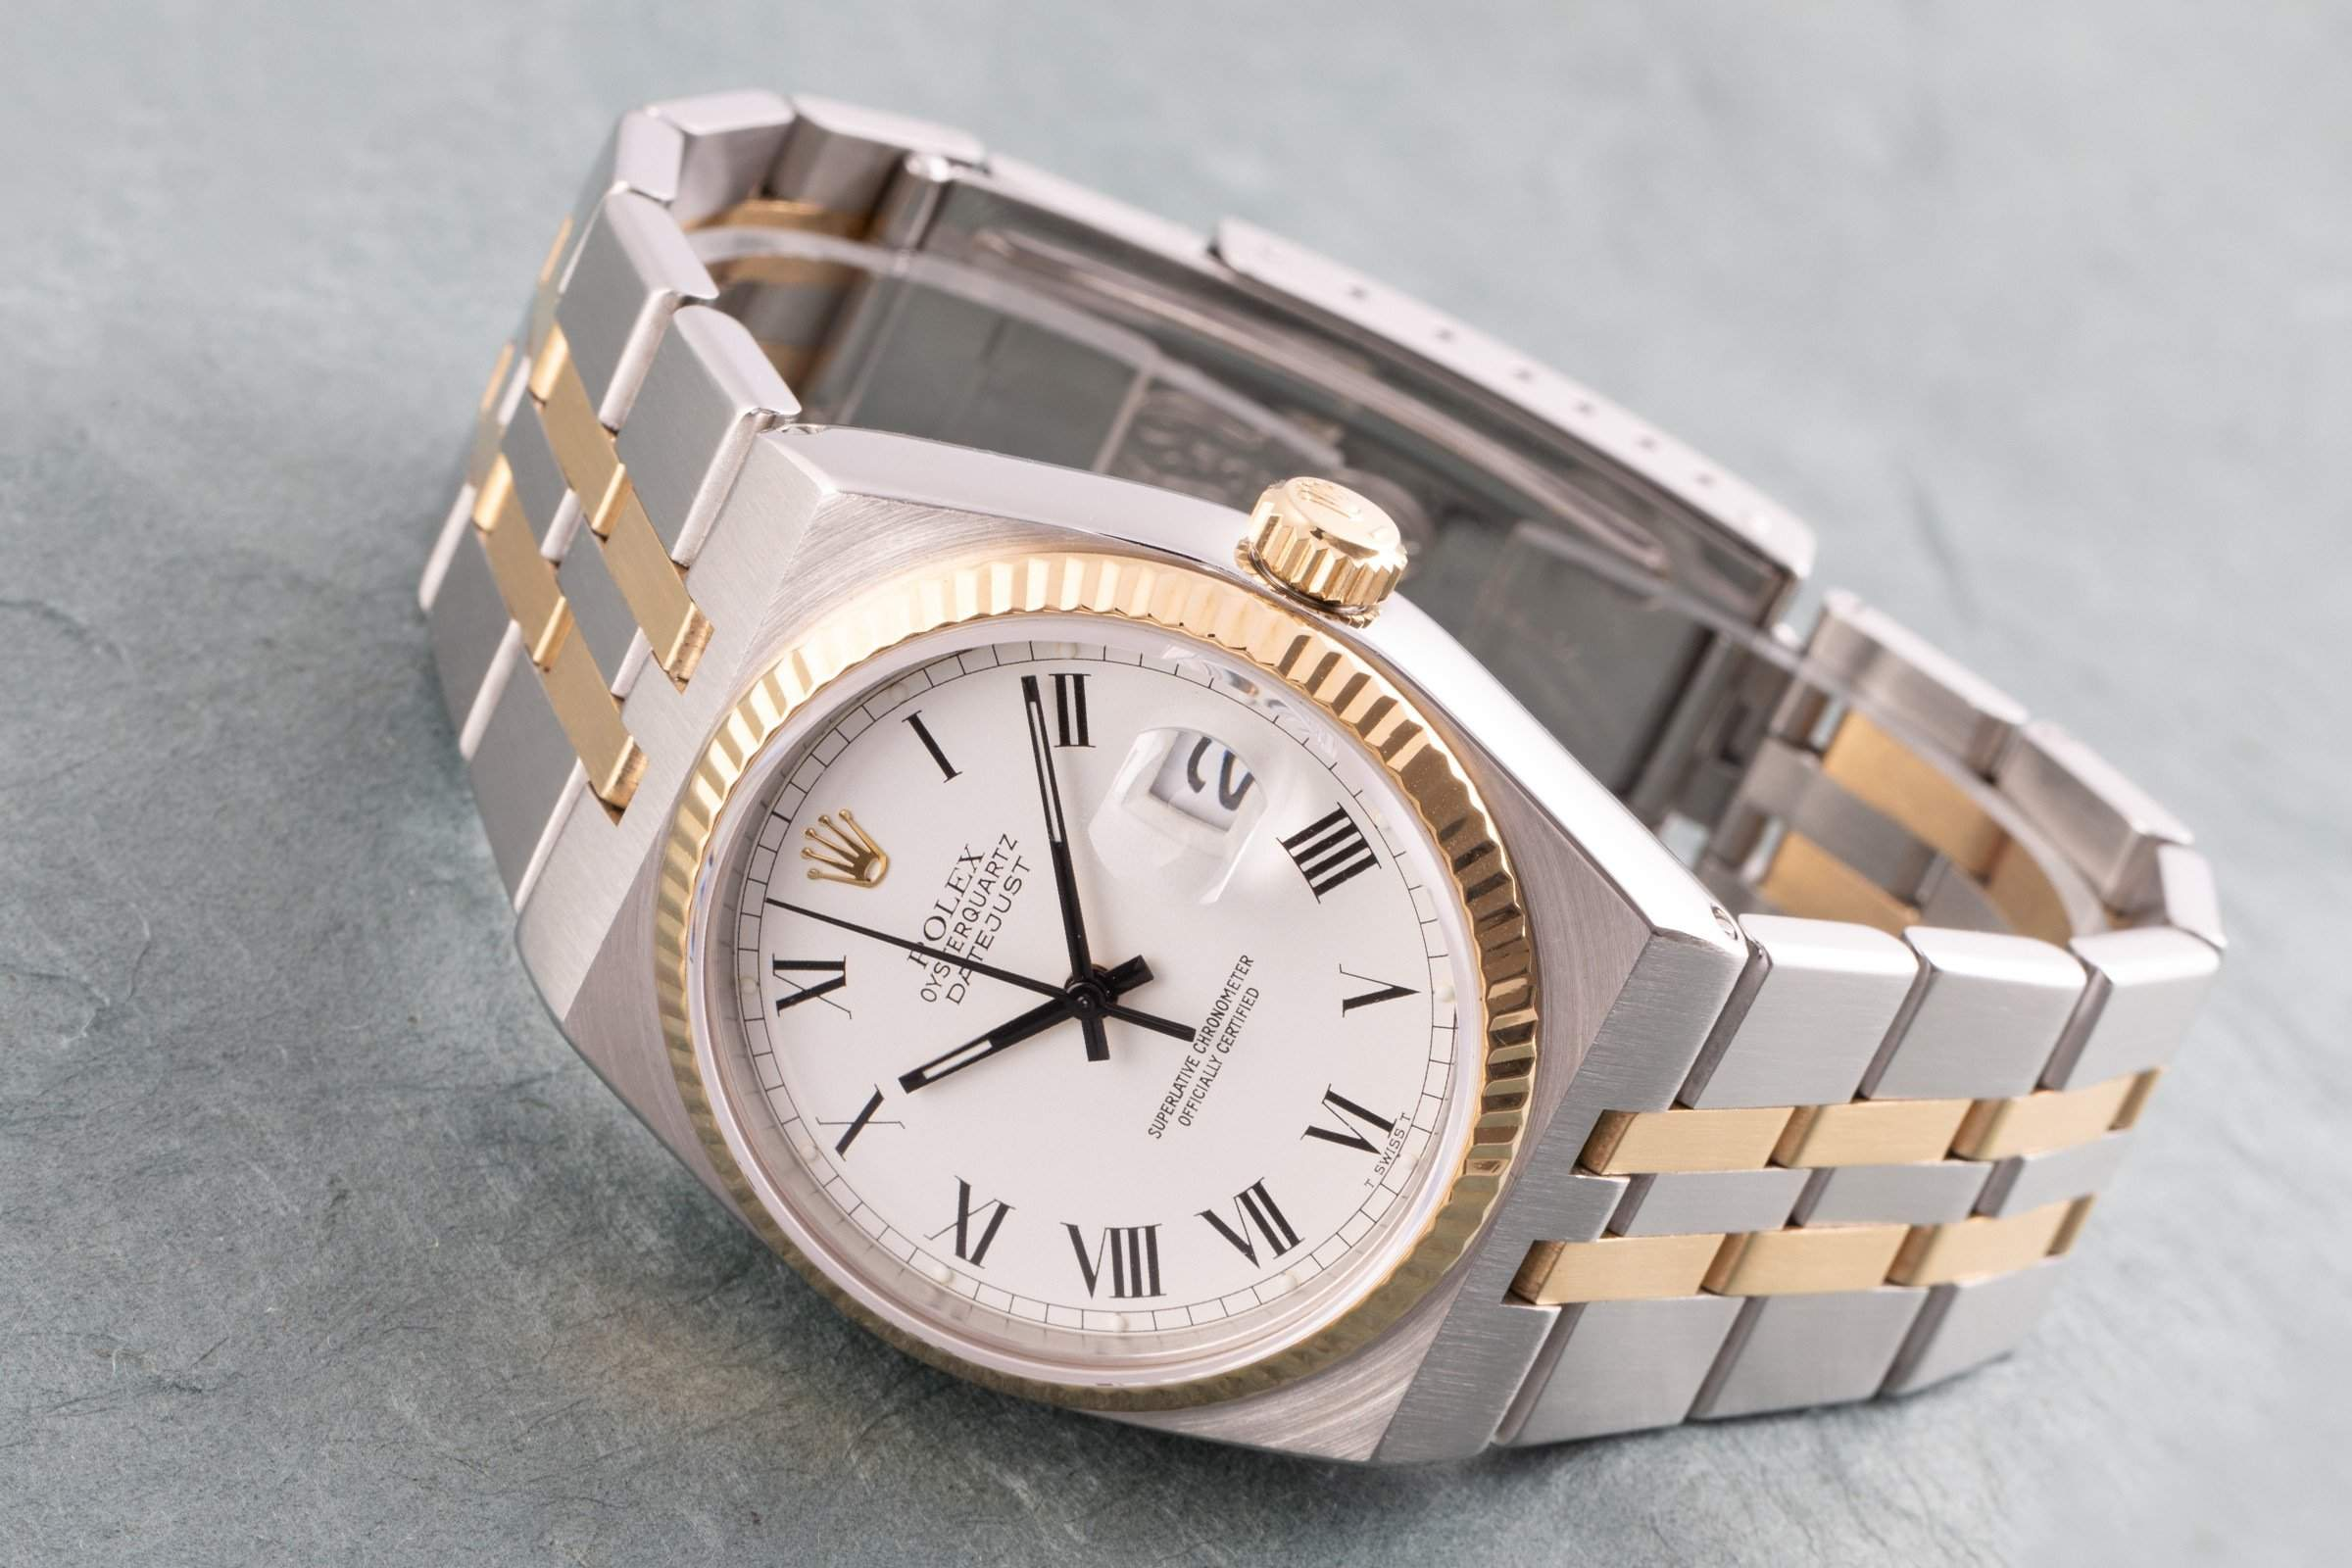 The exotic choice among Rolex watches: The Datejust Oysterquartz offers a quartz movement and a rather unusual design for Rolex.